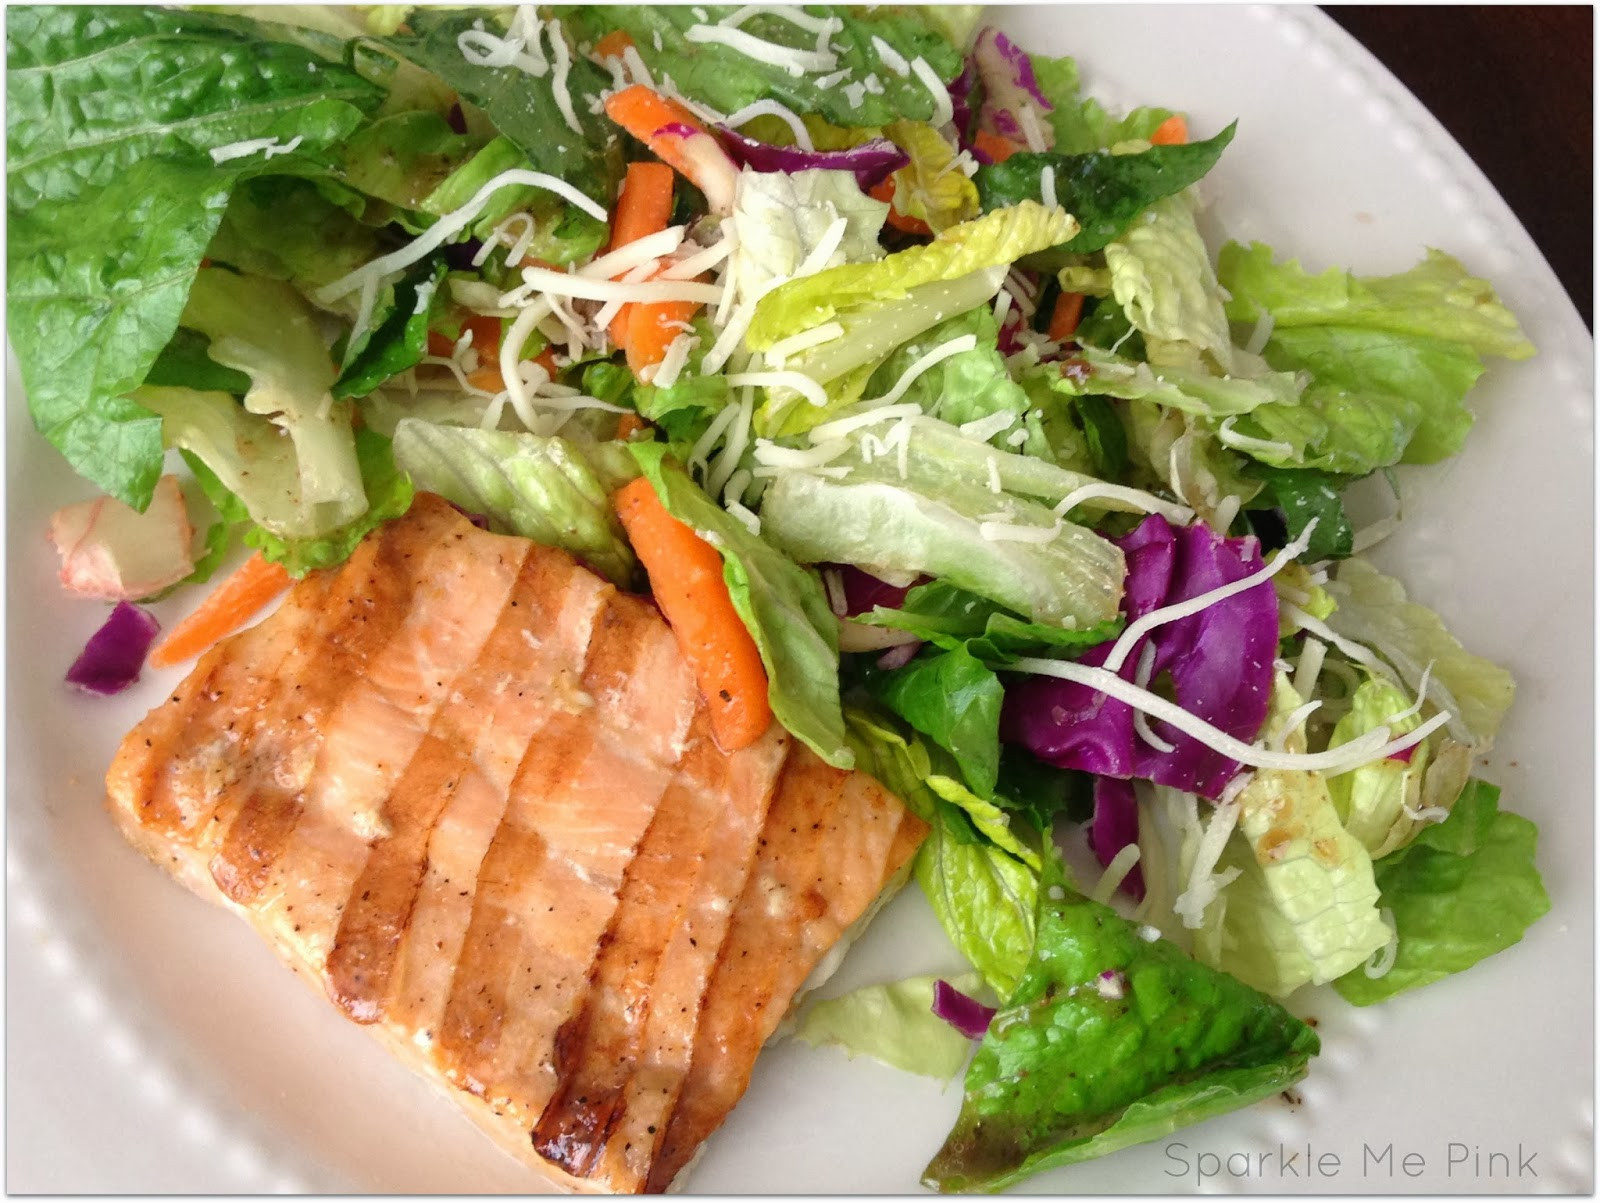 Salmon Salad Recipe Healthy  Sparkle Me Pink Grilled Salmon Salad Delicious Healthy